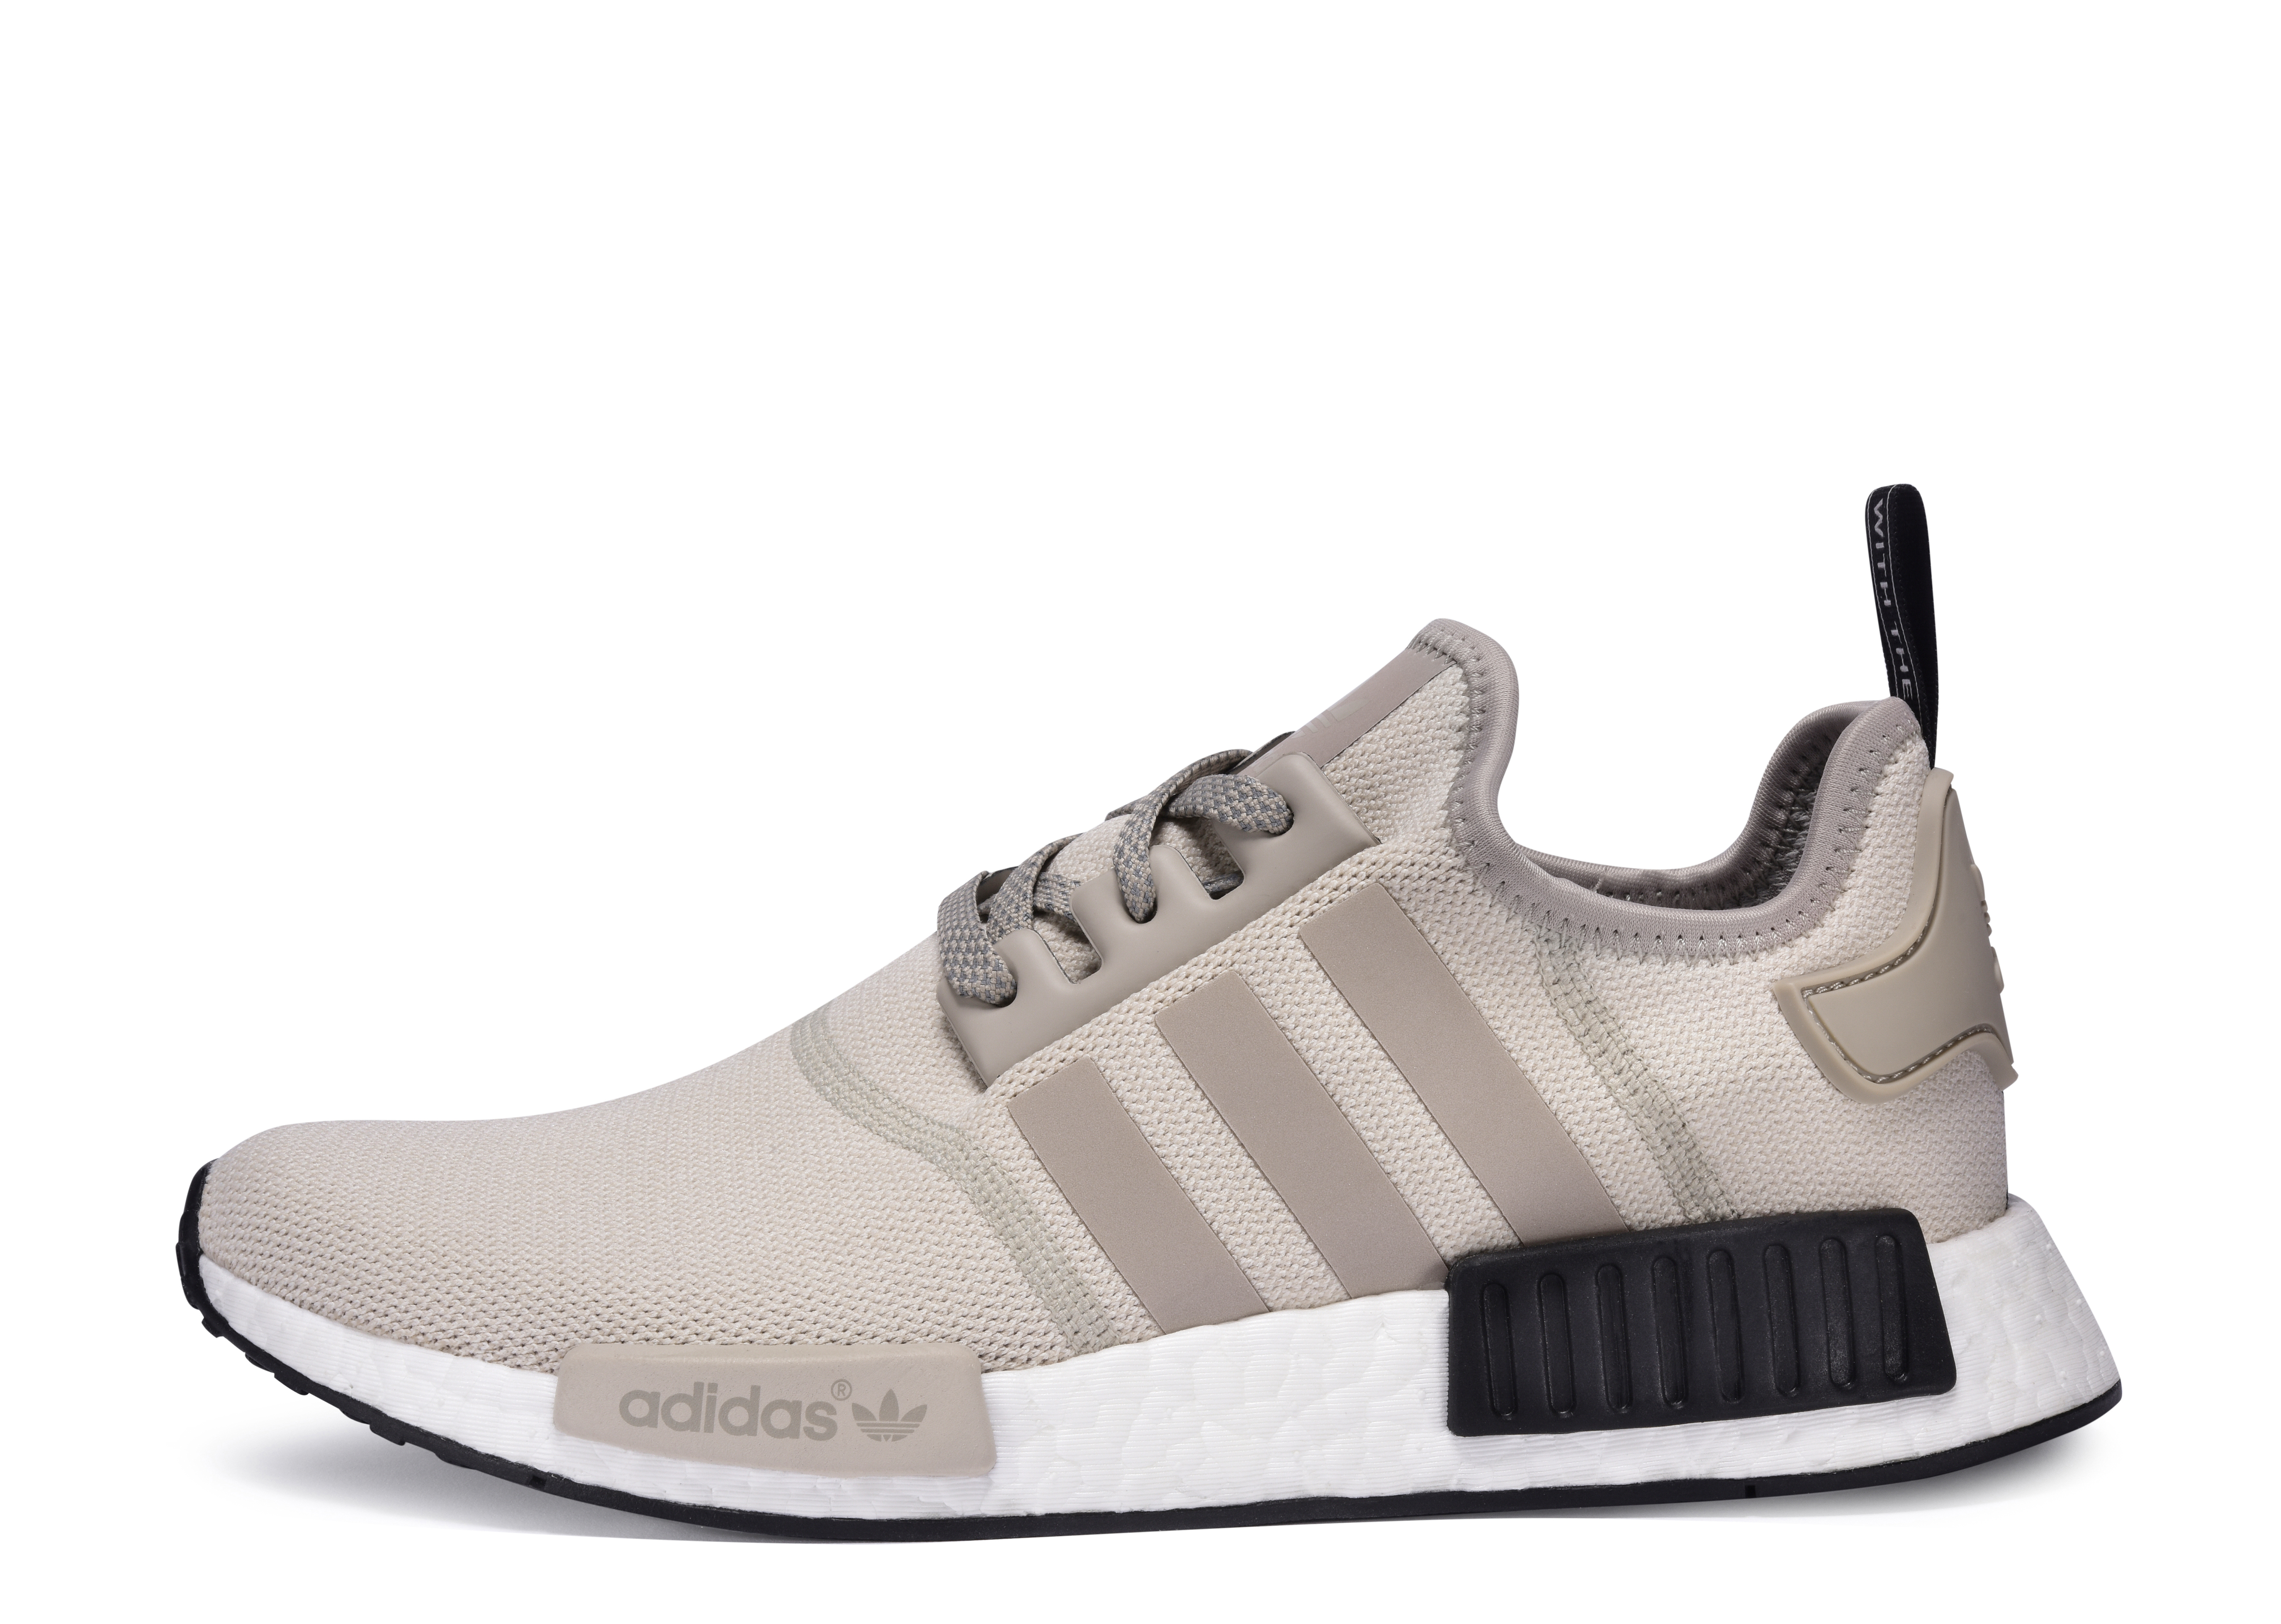 adidas NMD R1 Light Brown Black